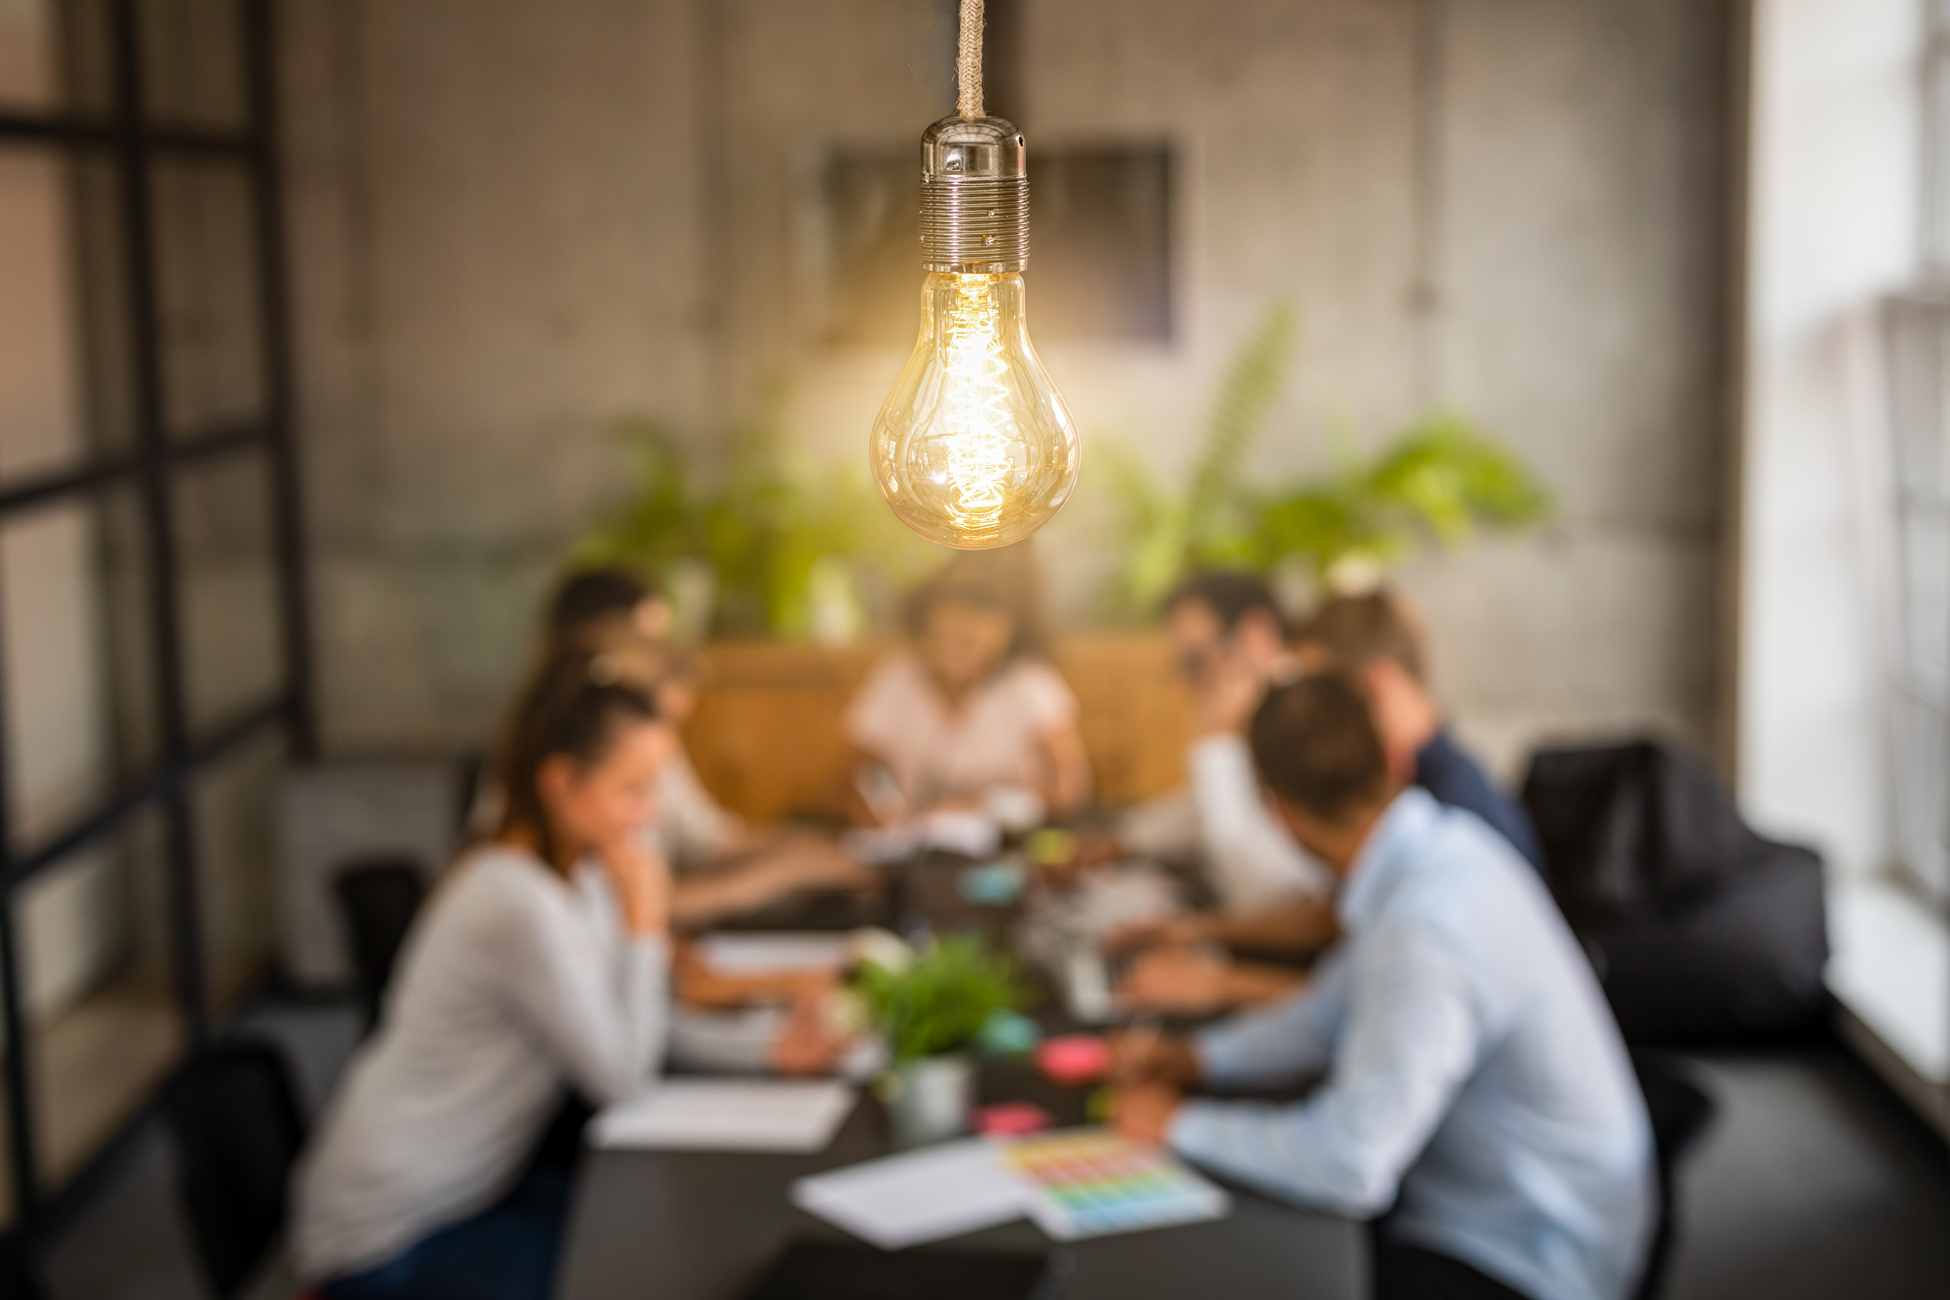 A group of people collaborating. A large lightbulb appears in the foreground.